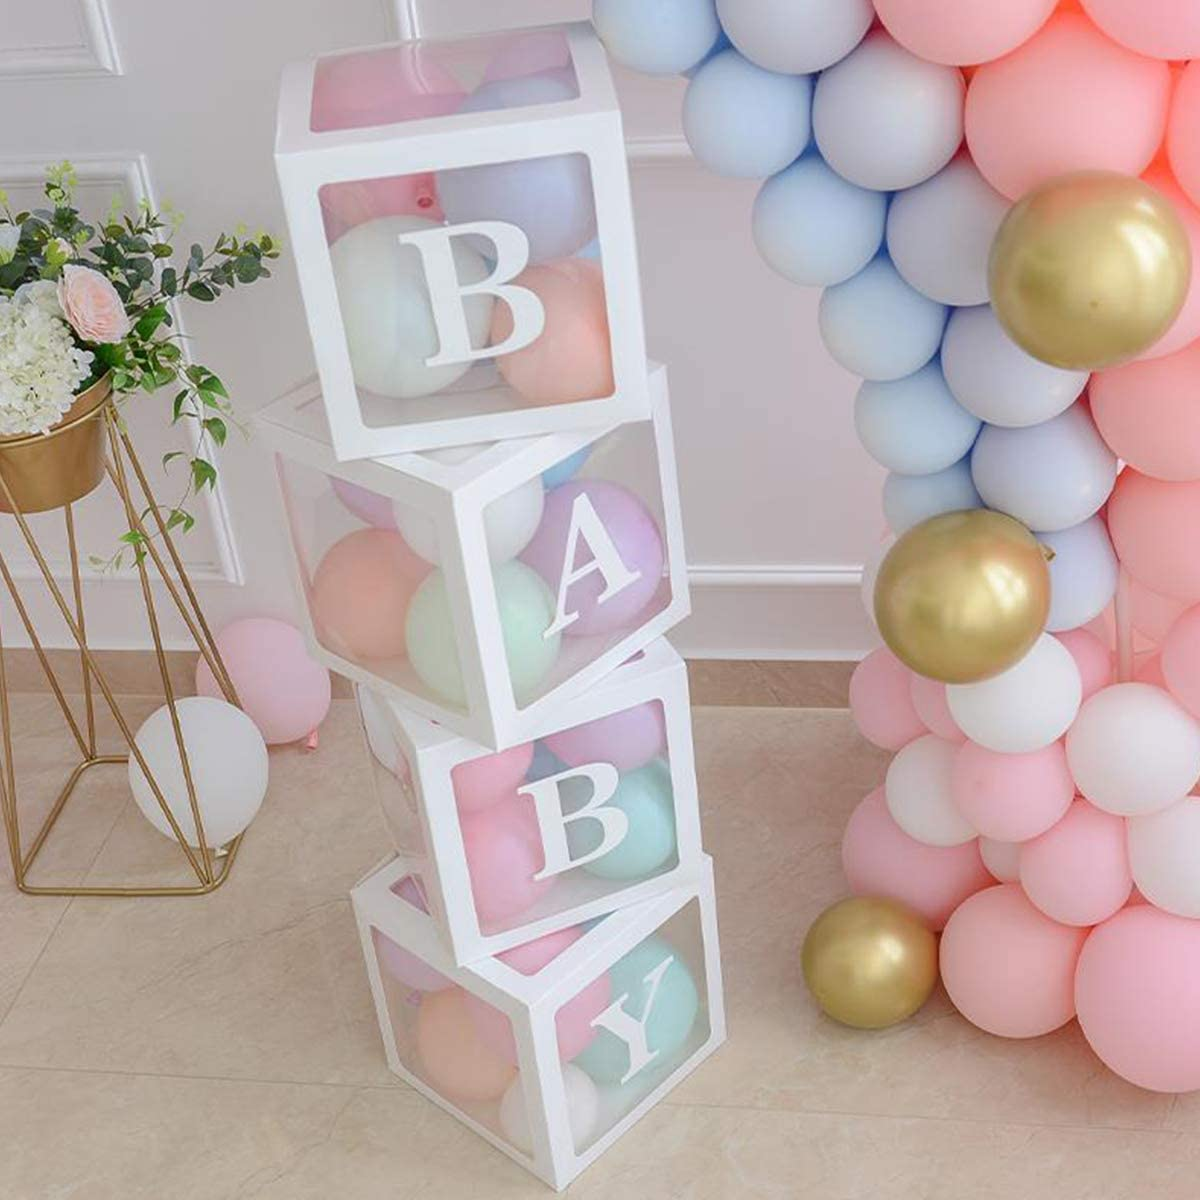 Amazon Com Baby Shower Boxes Party Decorations 4 Pcs Transparent Balloons Boxes Decor With Letters Individual Baby Blocks Design For Boys Girls Baby Shower Decorations Gender Reveal Bridal Showers Birthday Party Backdrop